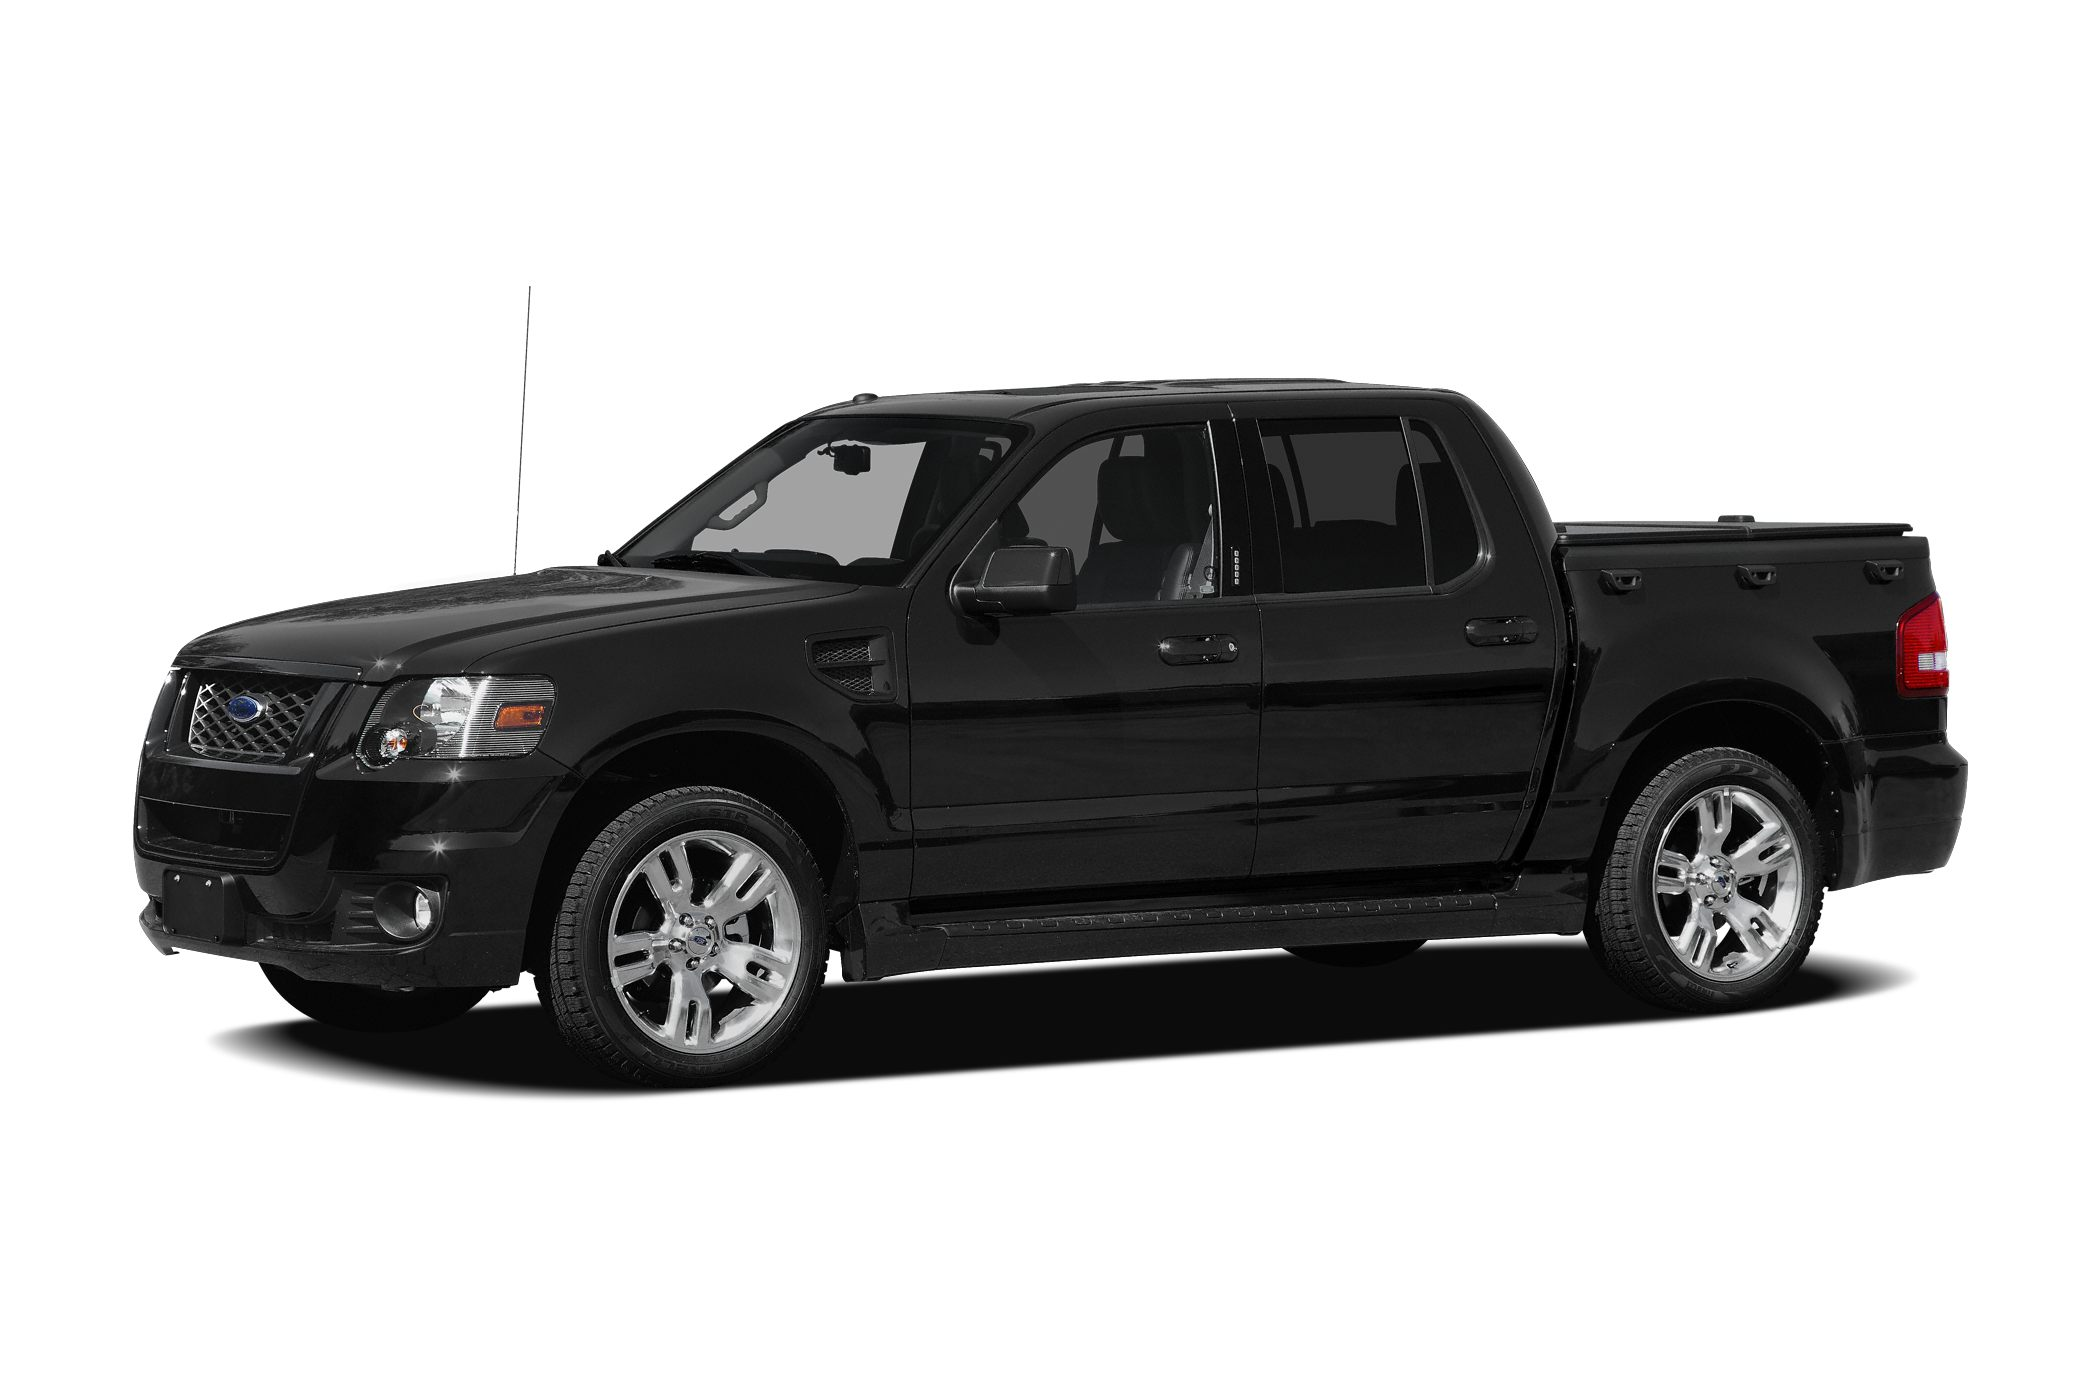 2010 Ford Explorer Sport Trac Limited Crew Cab Pickup for sale in Dillsburg for $29,763 with 52,963 miles.